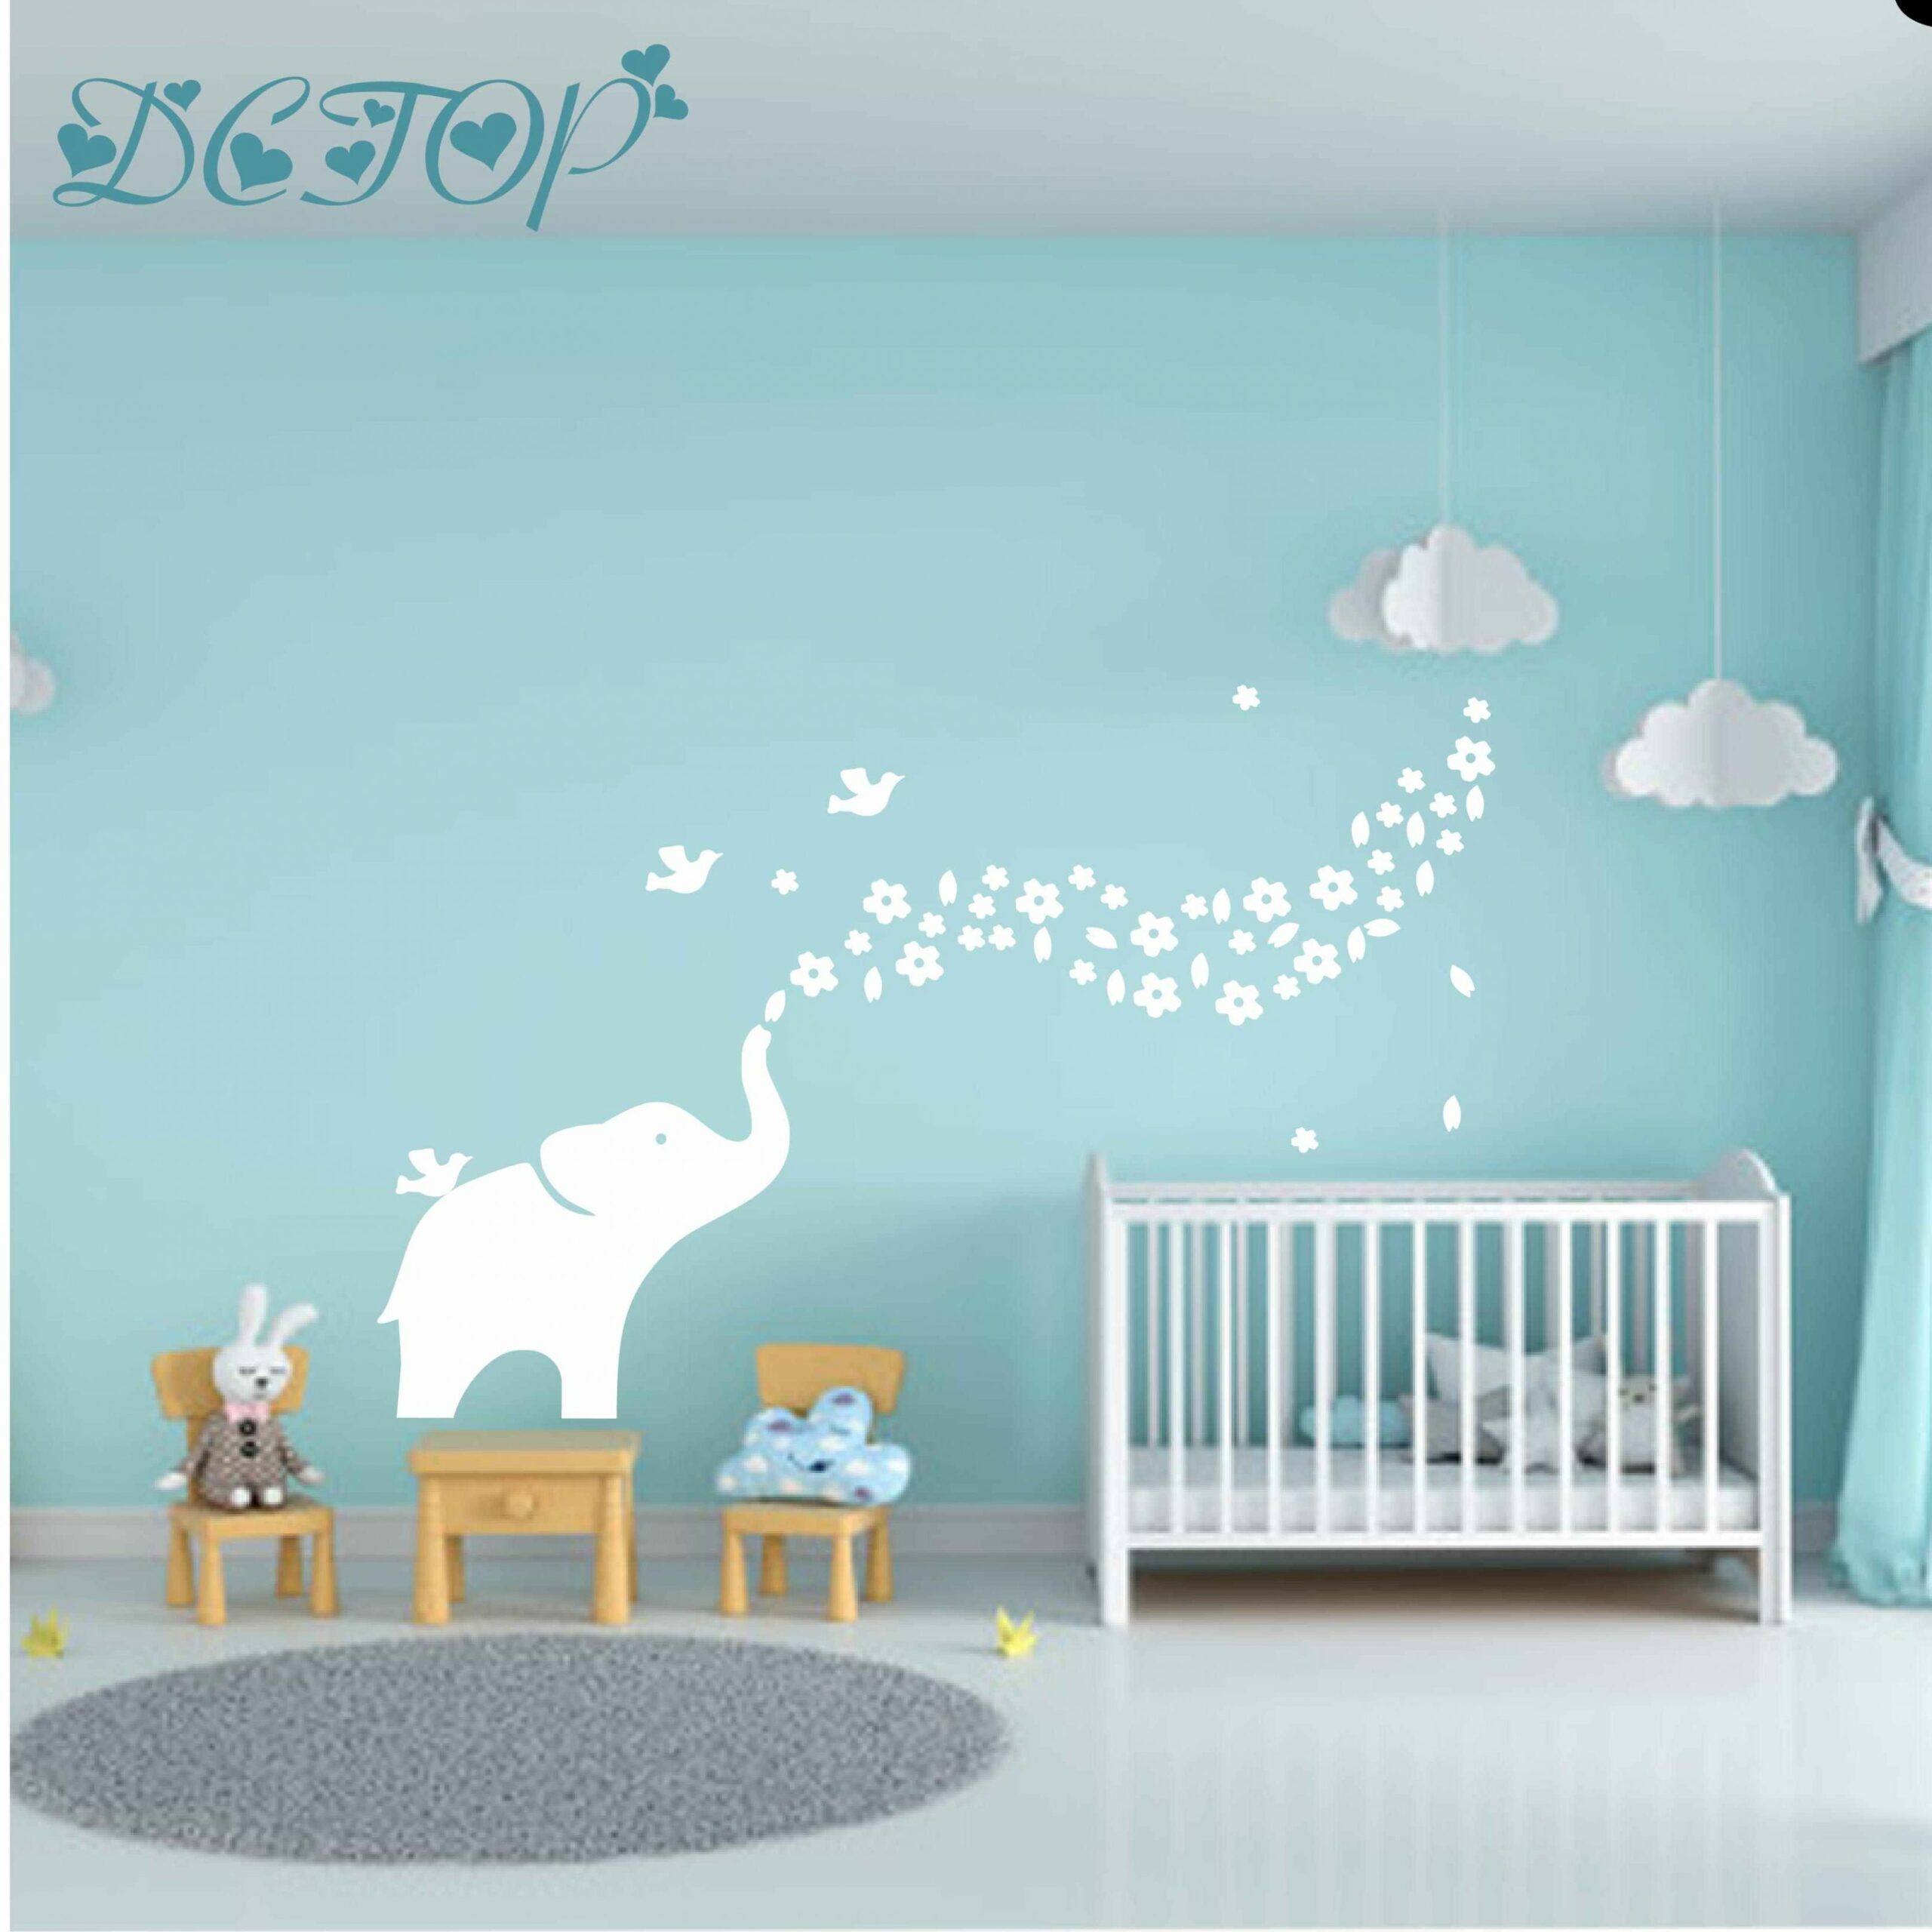 Baby Elephant Flowers Leaves Wall Sticker For Kids Baby Room Decor Home  Decoration Mural Decal Wallpaper Cartoon Animal Stickers - baby room elephant decor